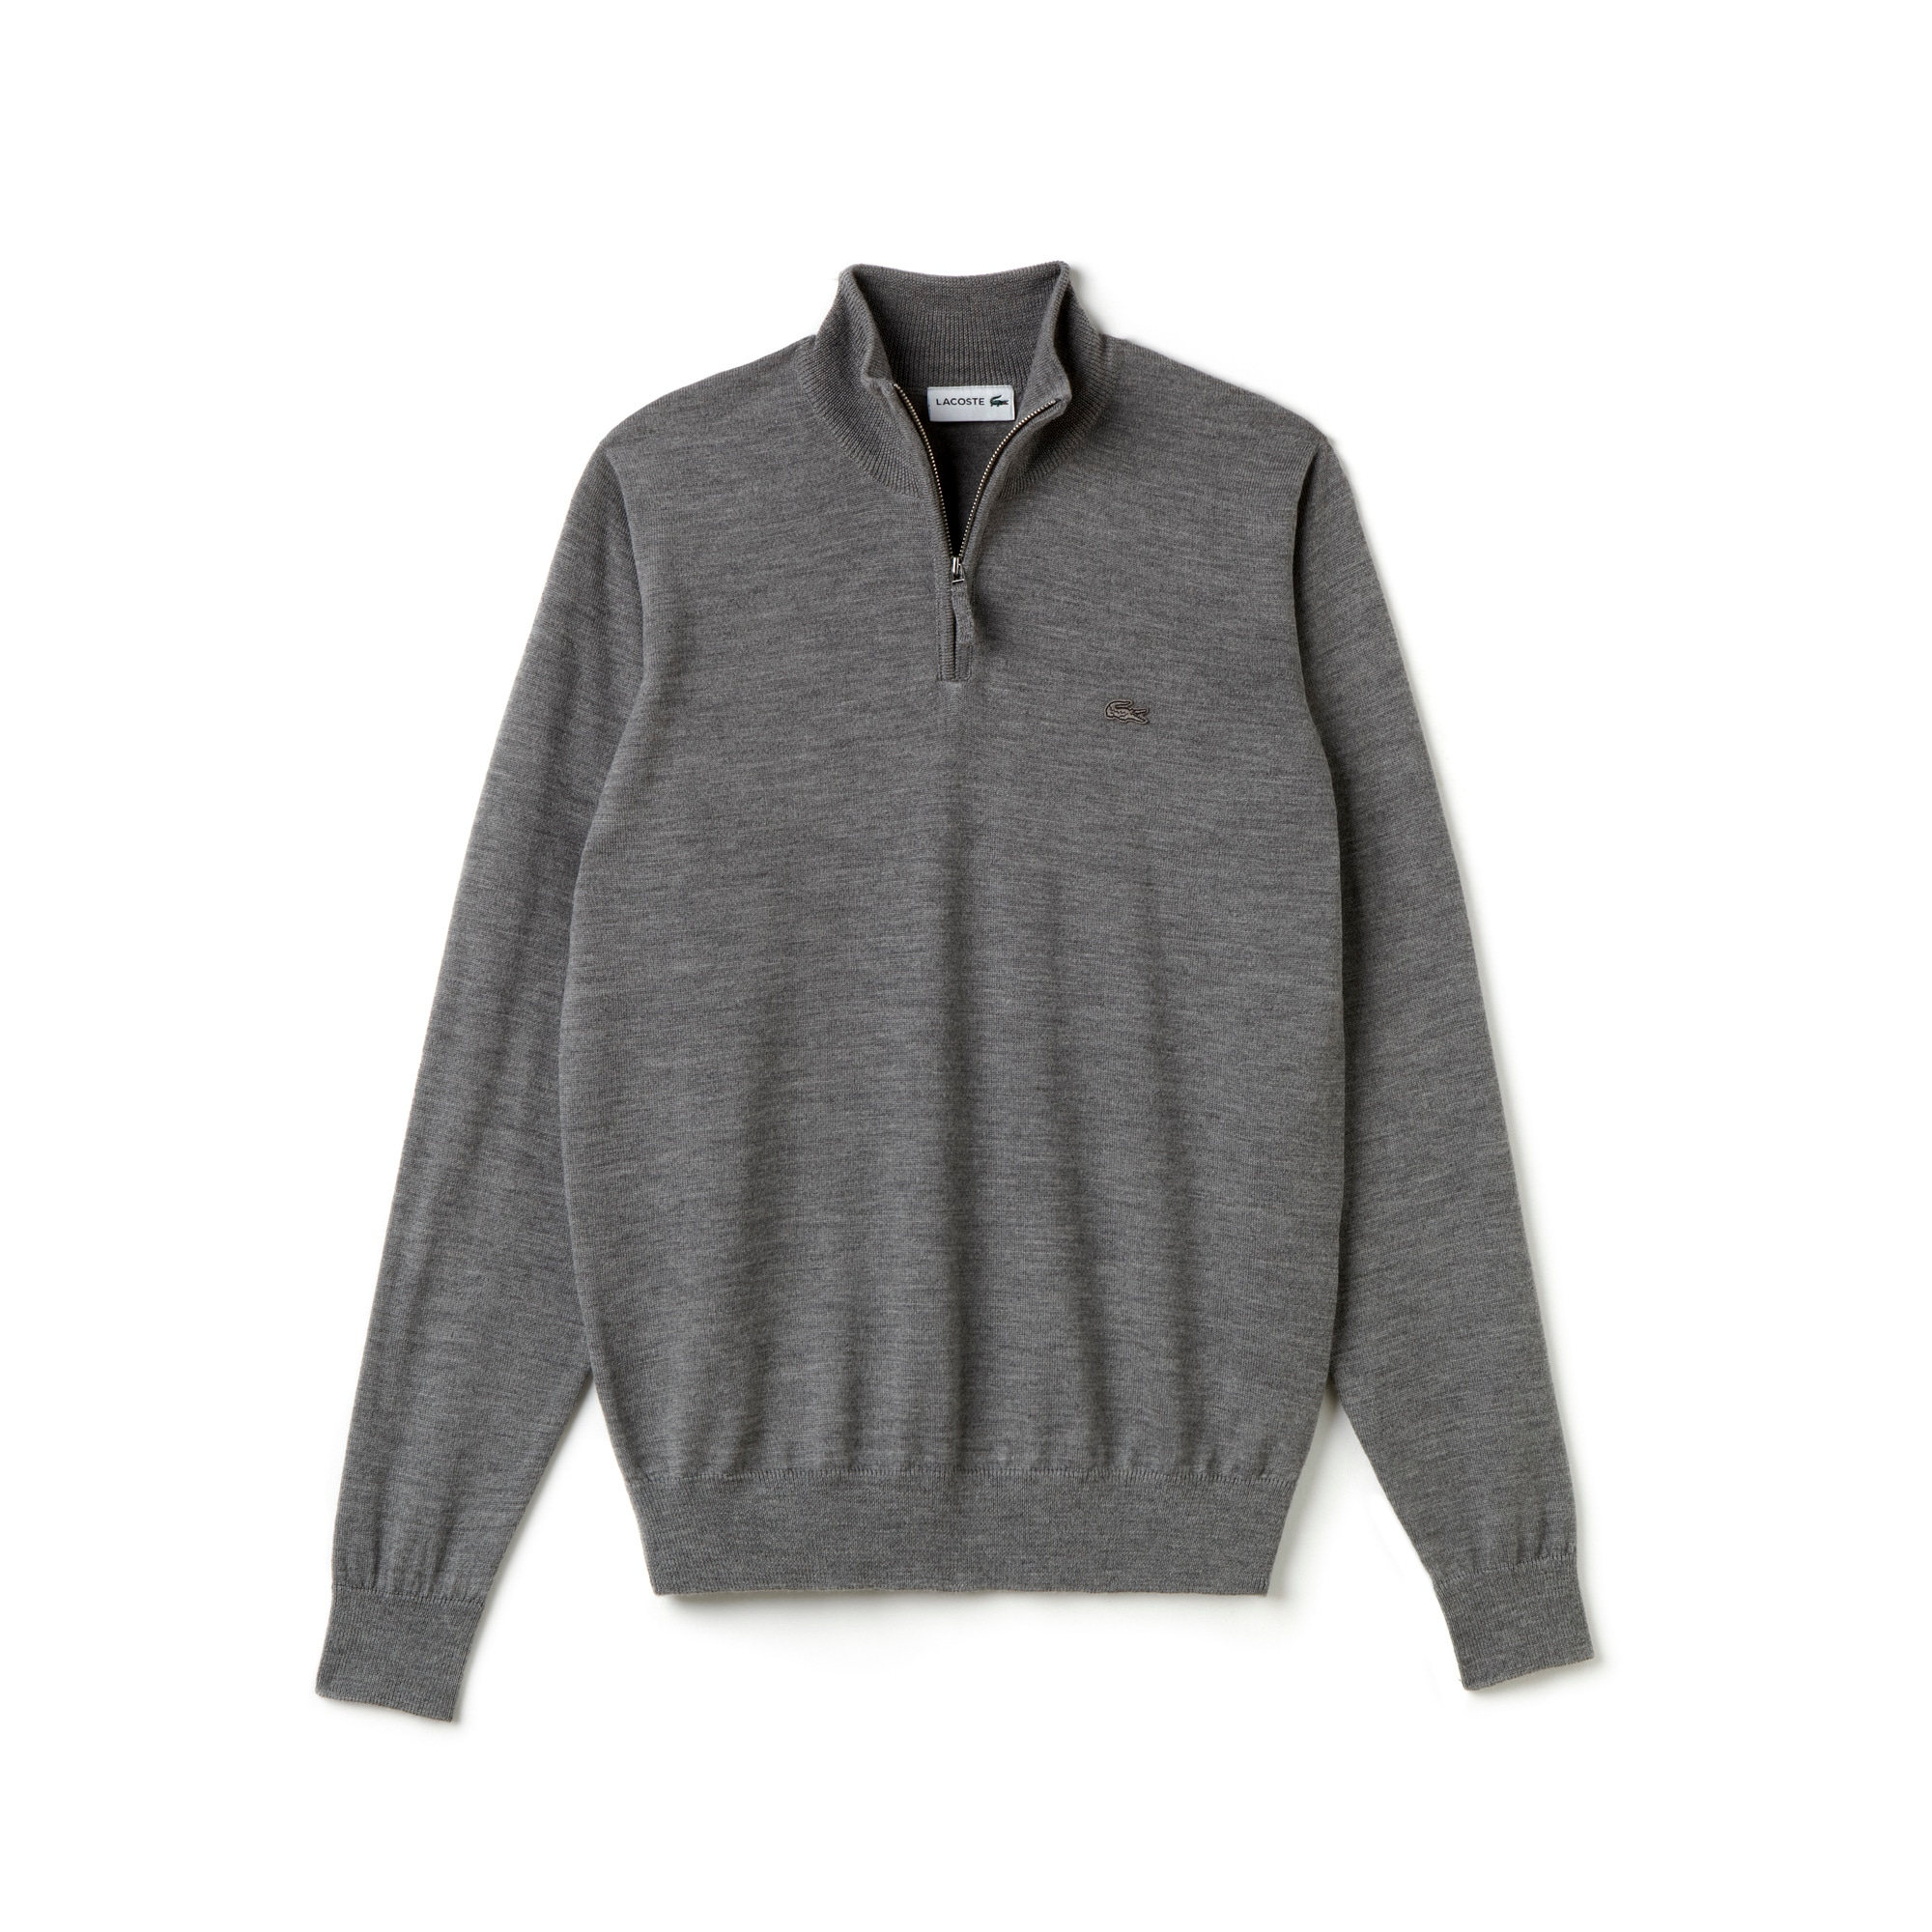 Men's Zippered Stand-Up Collar Wool Jersey Sweater